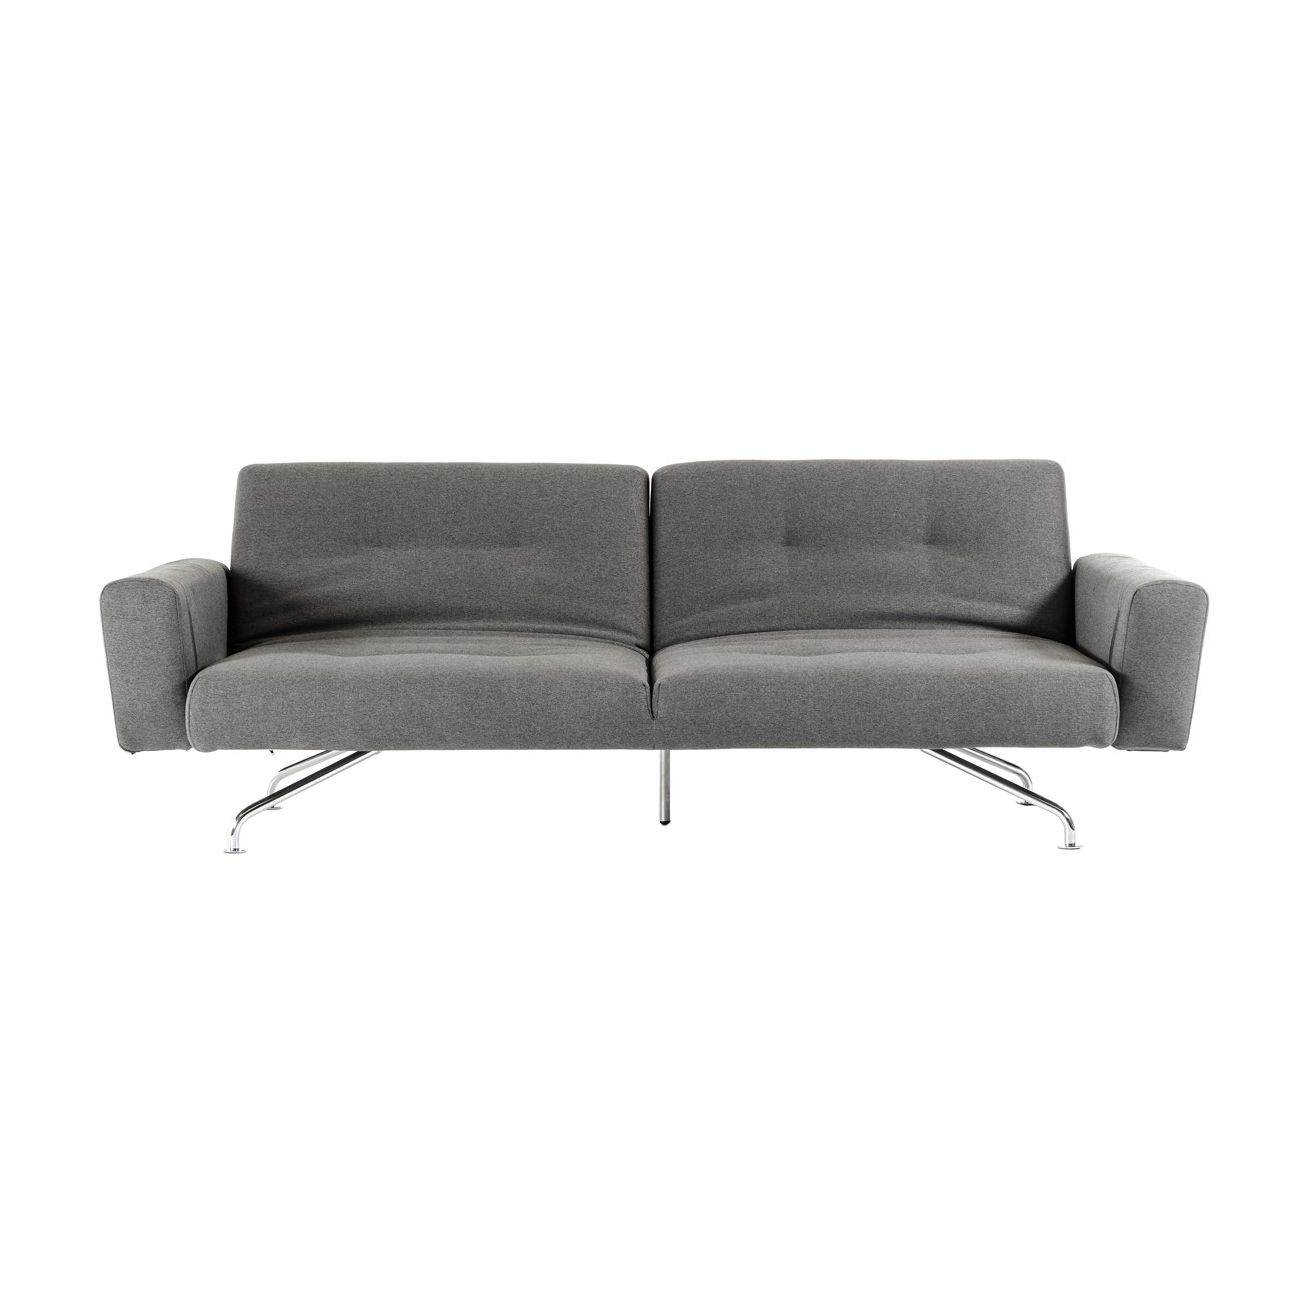 Aidan Convertible Sofa | Convertible Furniture | Pinterest | Mid Regarding Aidan Ii Sofa Chairs (Image 4 of 20)